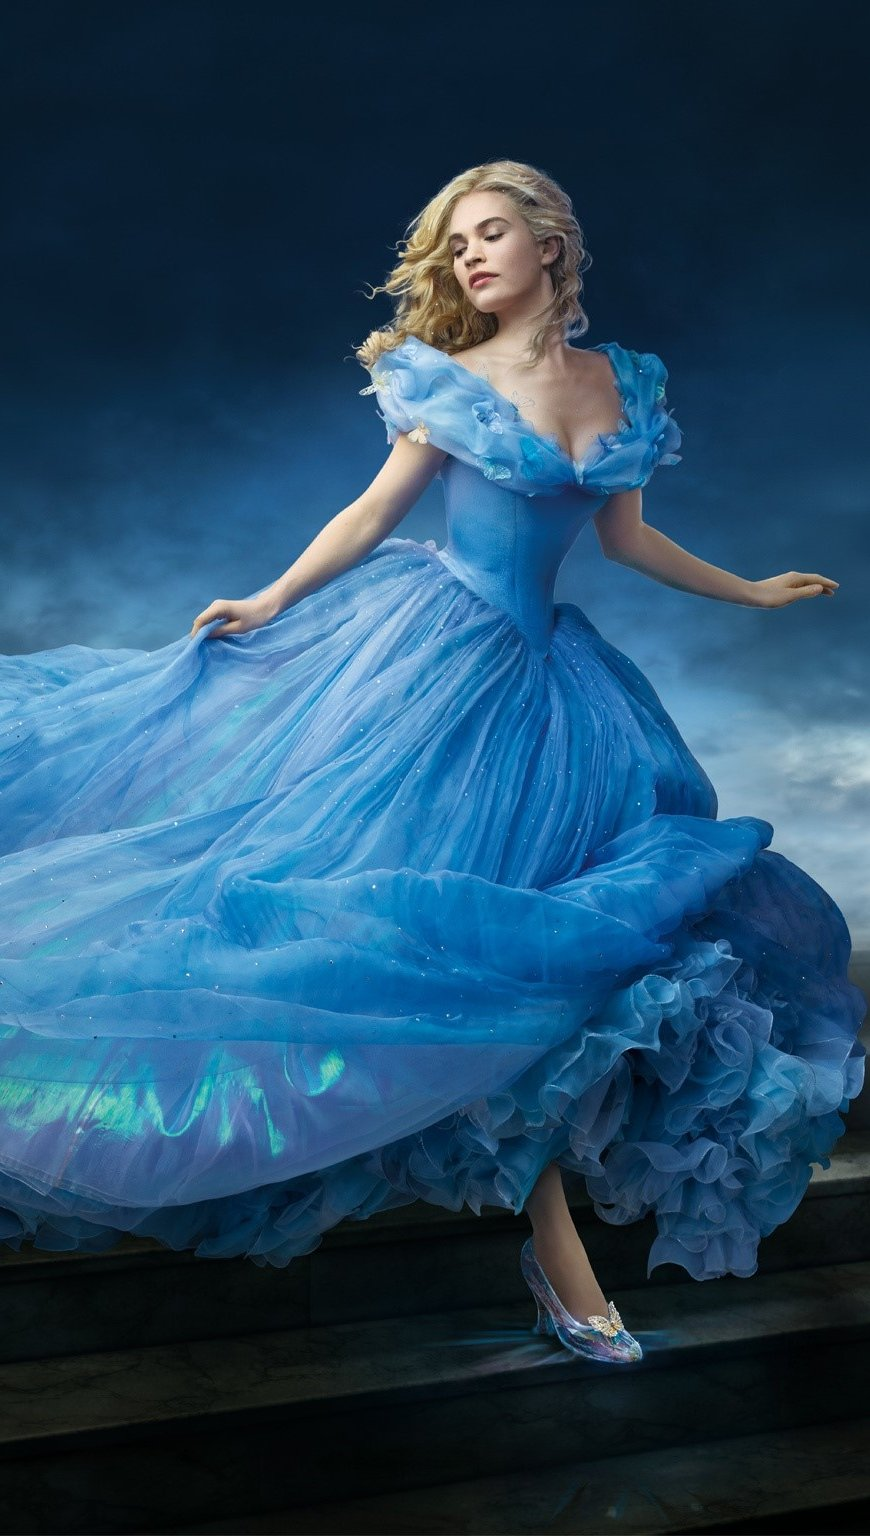 Wallpaper Lily James as Cinderella Vertical